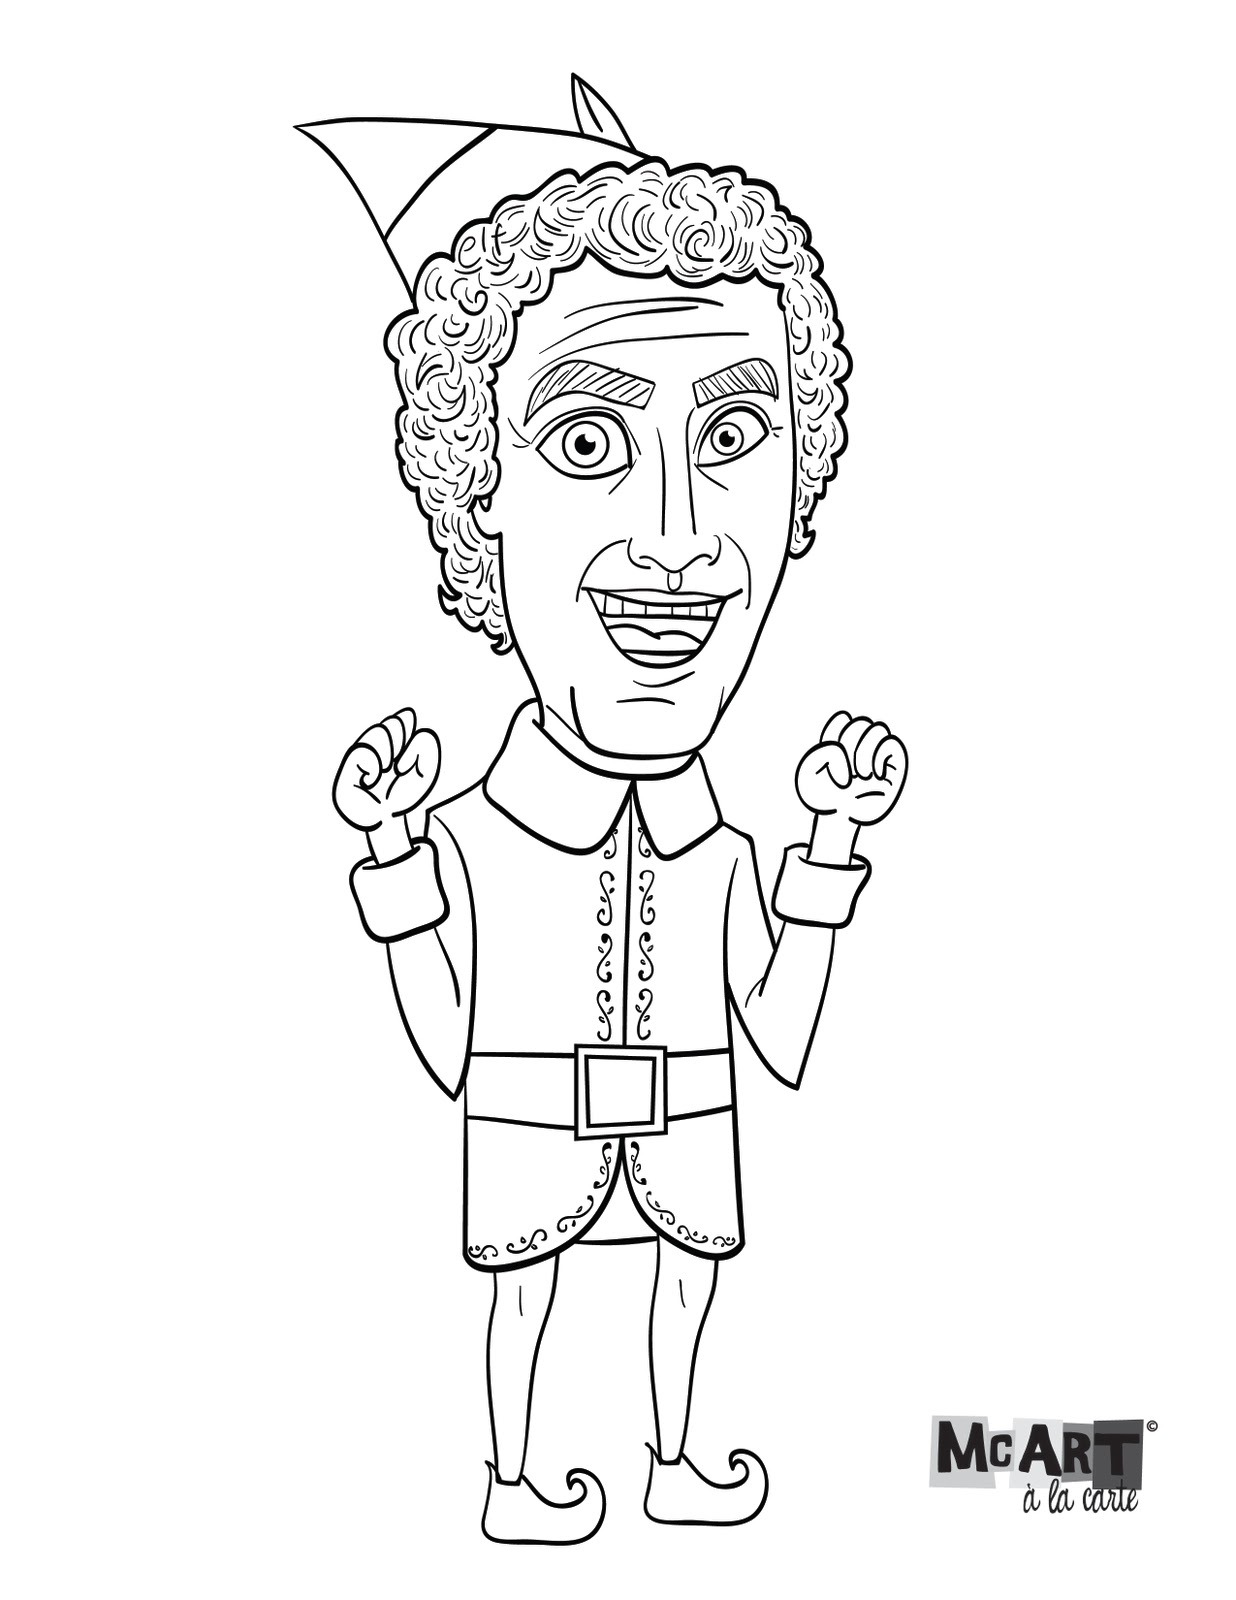 1236x1600 Mcart La Carte Buddy The Elf Coloring Page Coloring Pages Elf